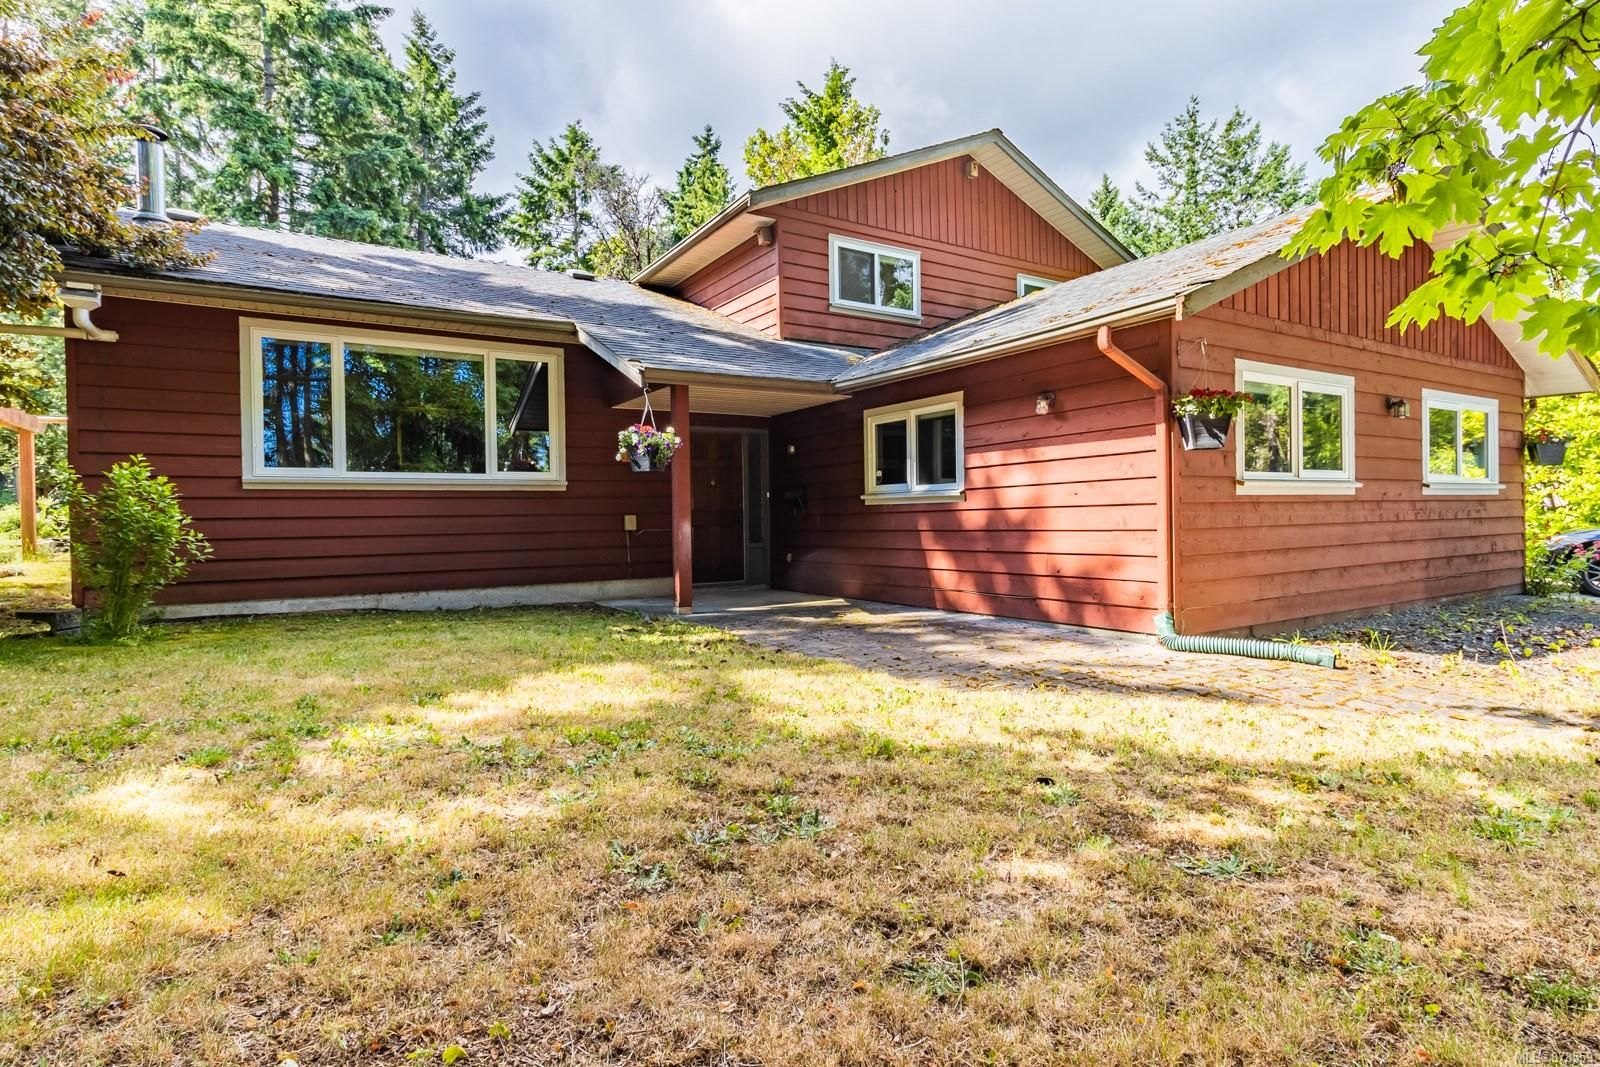 Main Photo: 7937 Northwind Dr in : Na Upper Lantzville House for sale (Nanaimo)  : MLS®# 878559